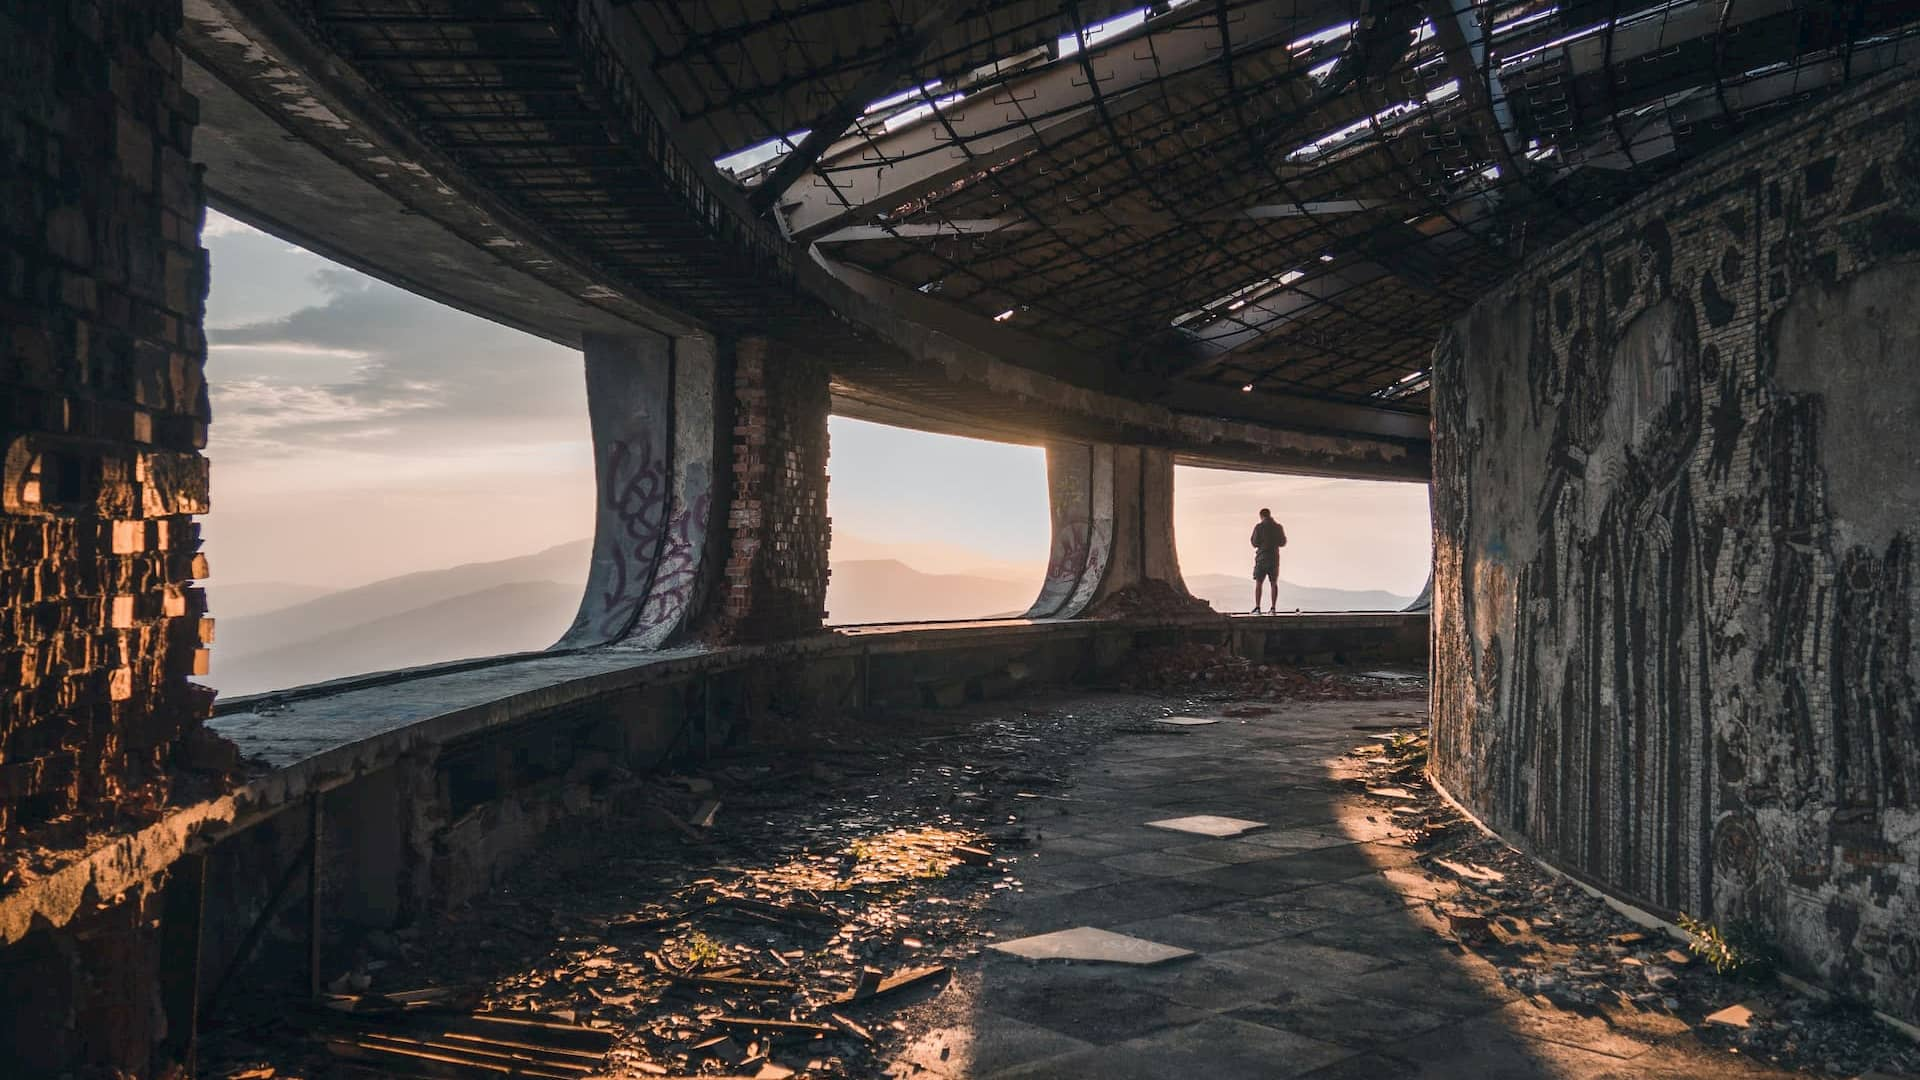 View from within the ruins of the Monument House of he Bulgarian Communist Party, built on Buzludzha Peak in central Bulgaria. Photo by Natalya Letunova on Unsplash